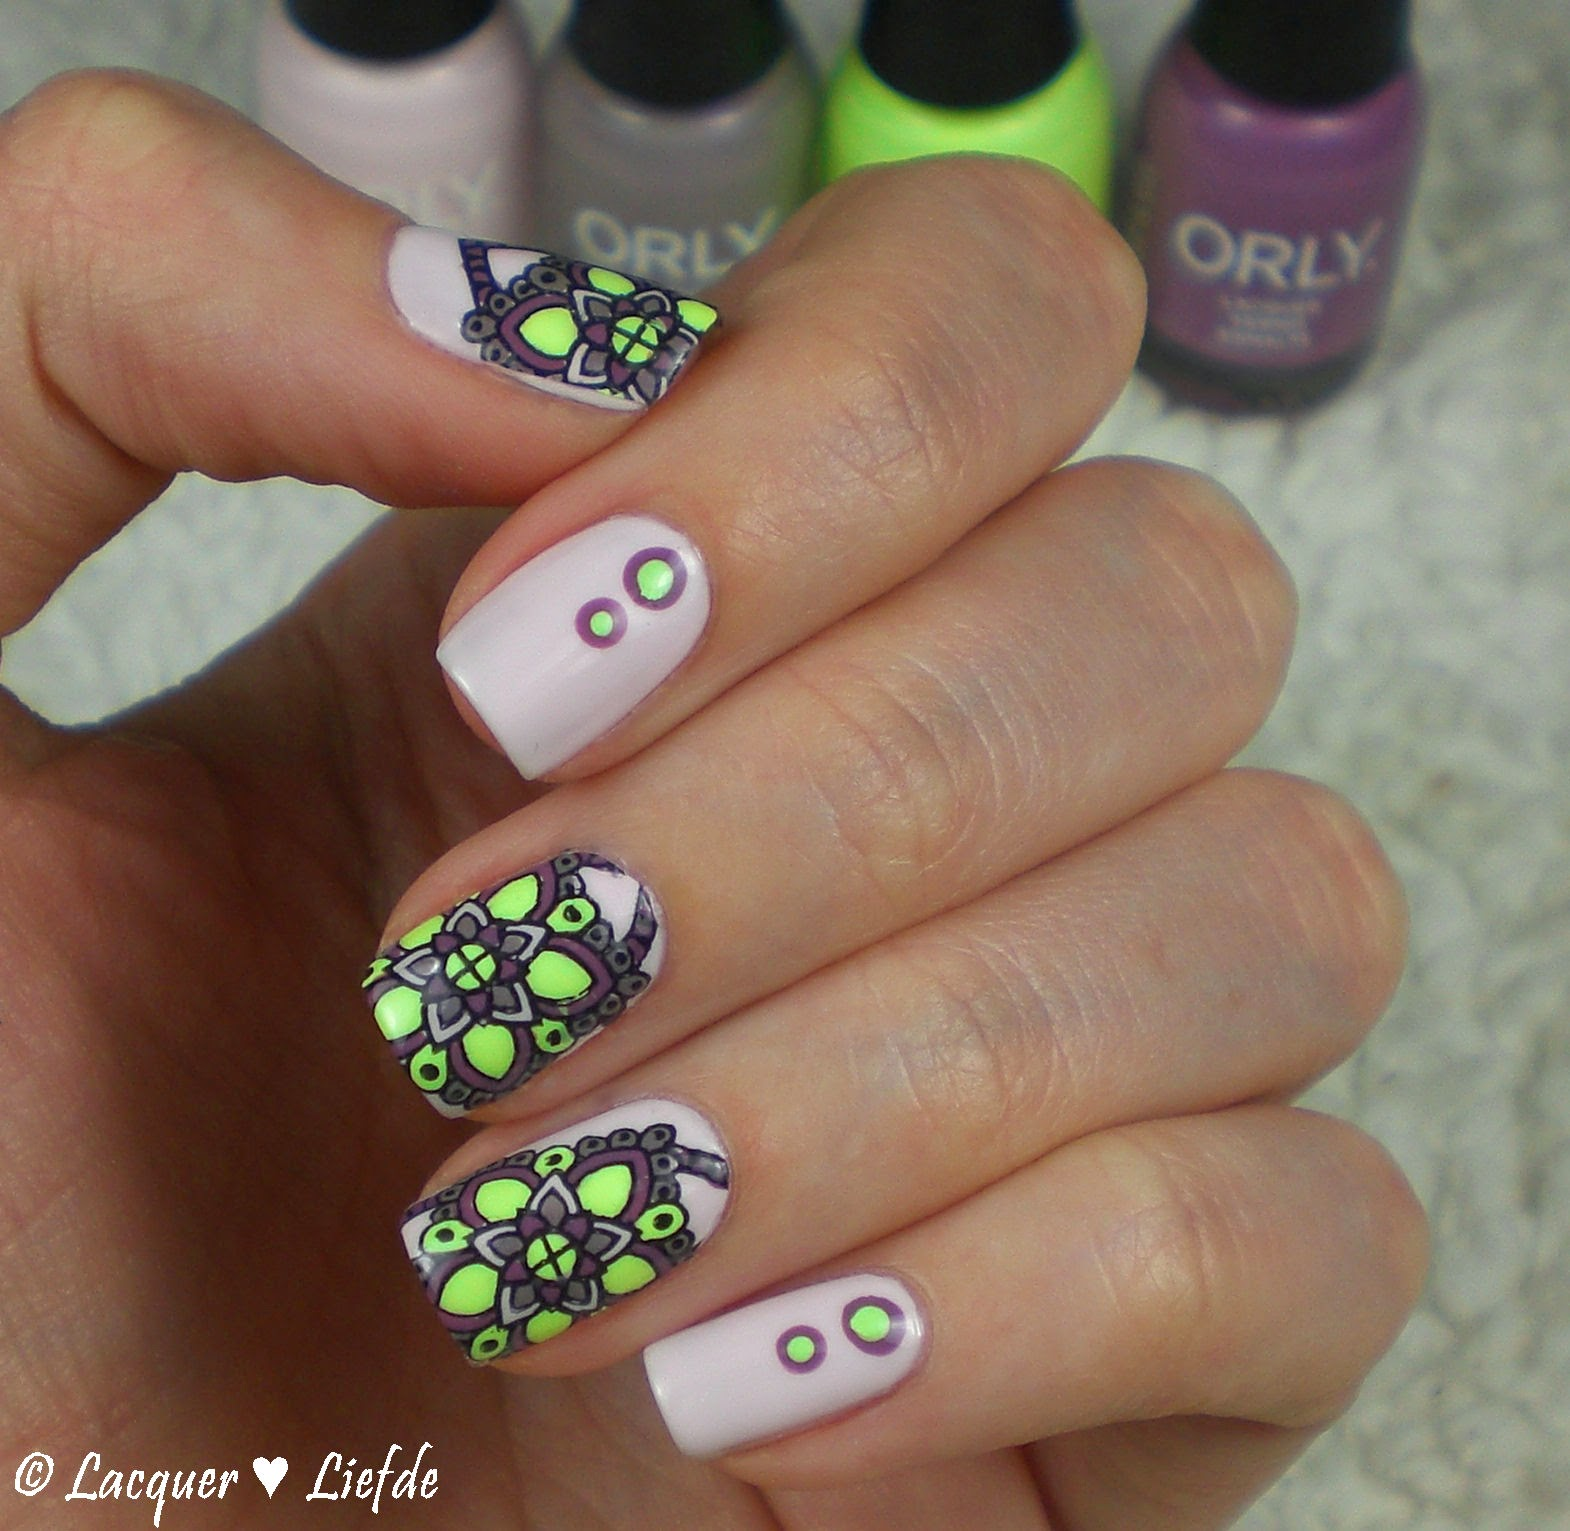 Orly Sugar High Flowers